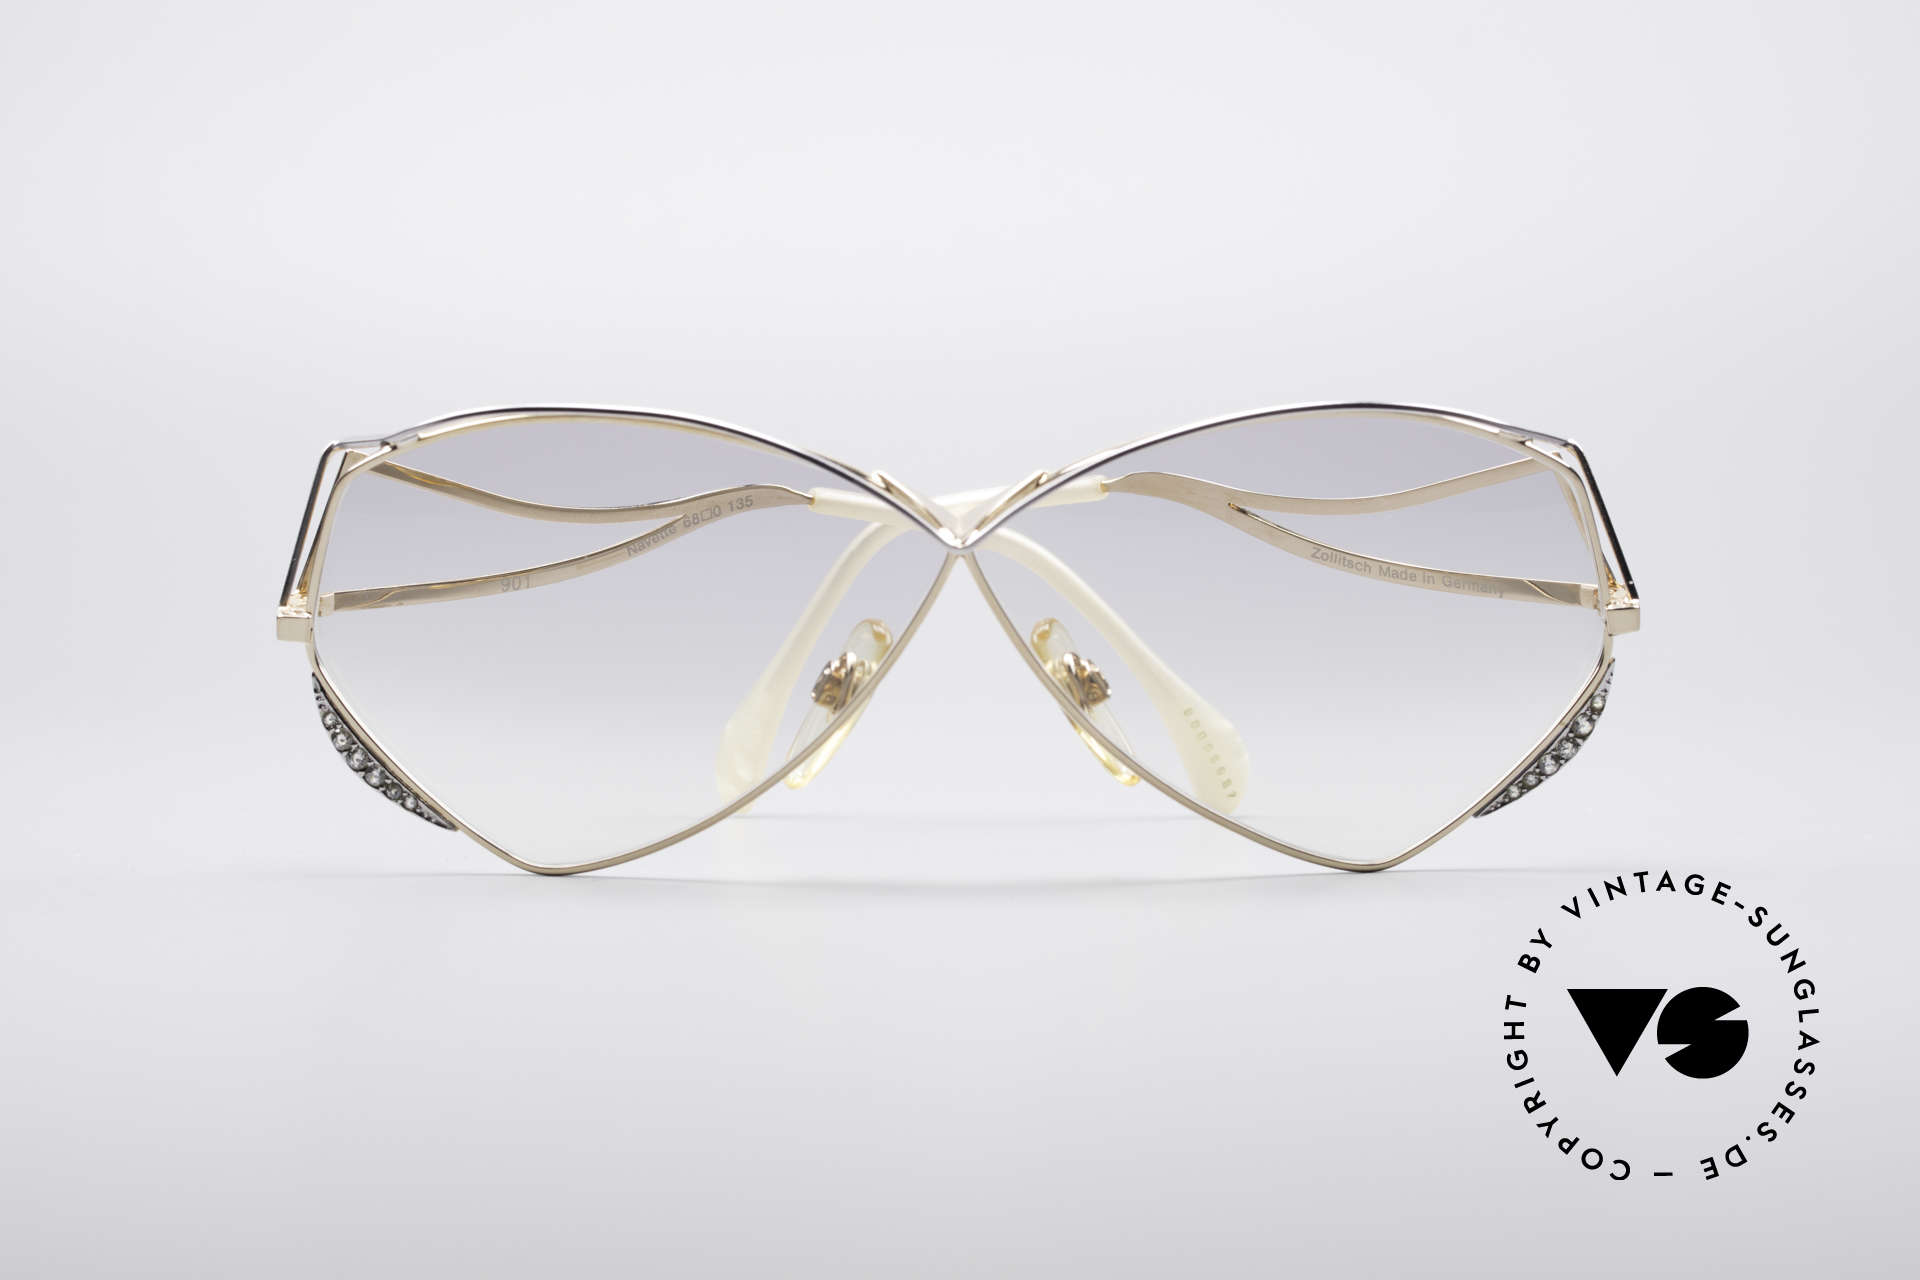 Zollitsch Navette Princess Sunglasses, NO retro fashion; a gorgeous 25 years old ORIGINAL, Made for Women